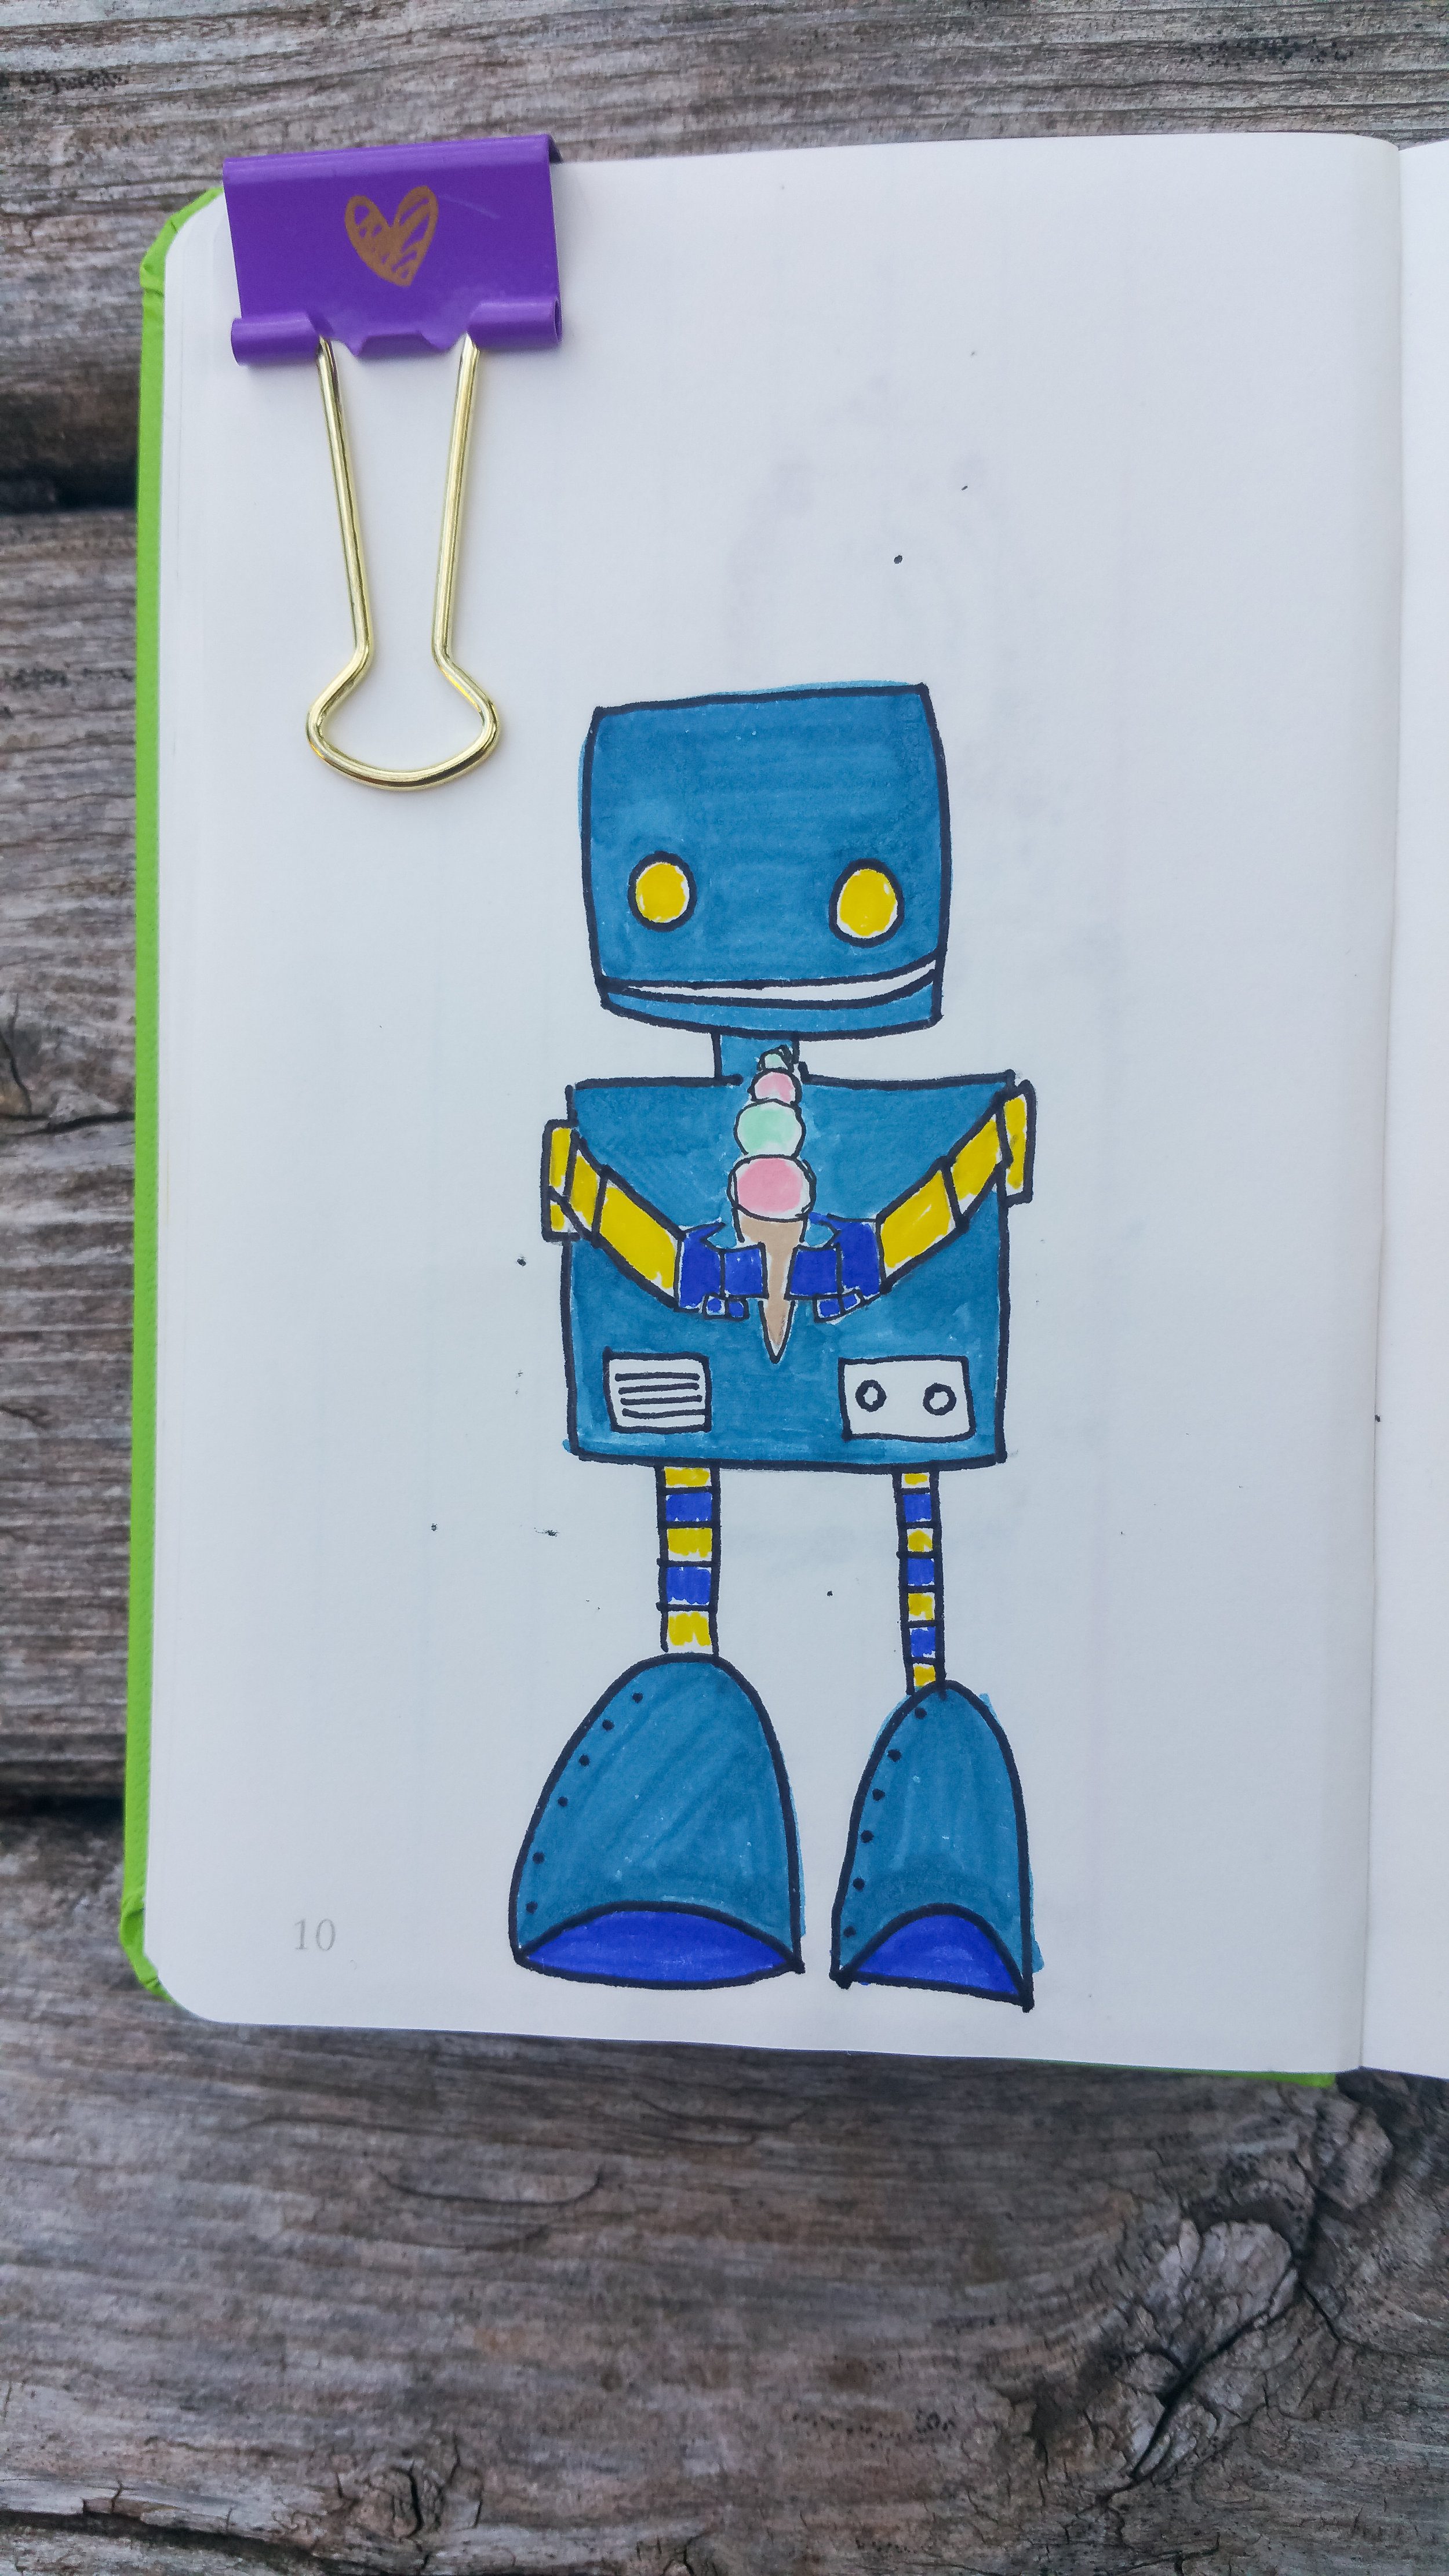 Sept 25, 2017 robot #18/365 (mmmm....ice cream) (and i really don't know how this little guy's scrawny legs are going to support his giant mismatched feet.)